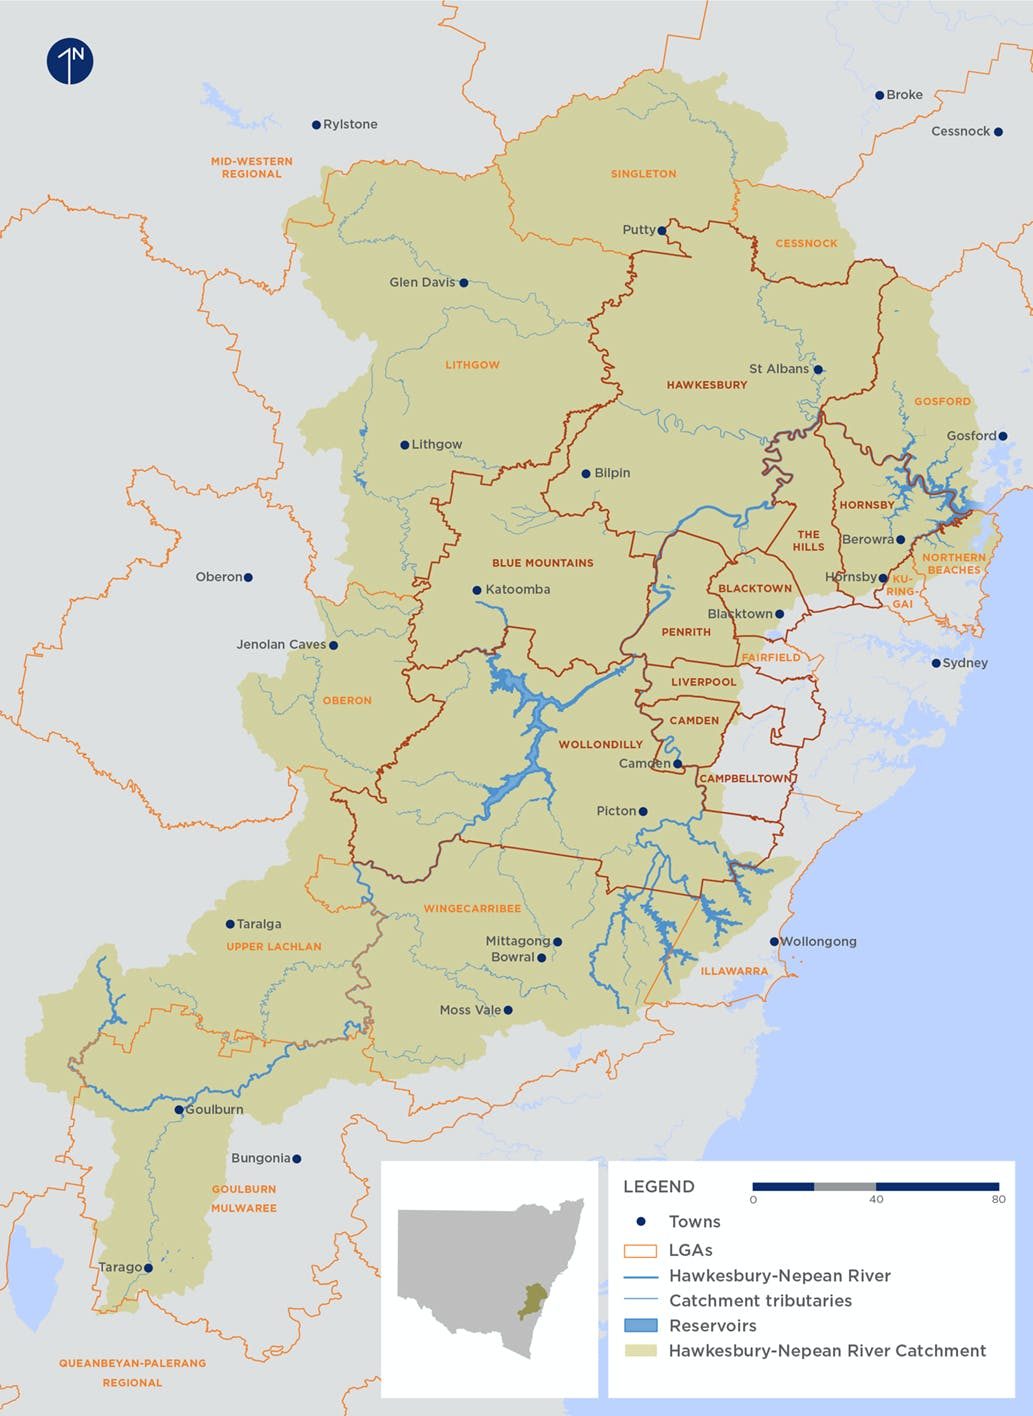 Map of the Hawkesbury-Nepean Catchment